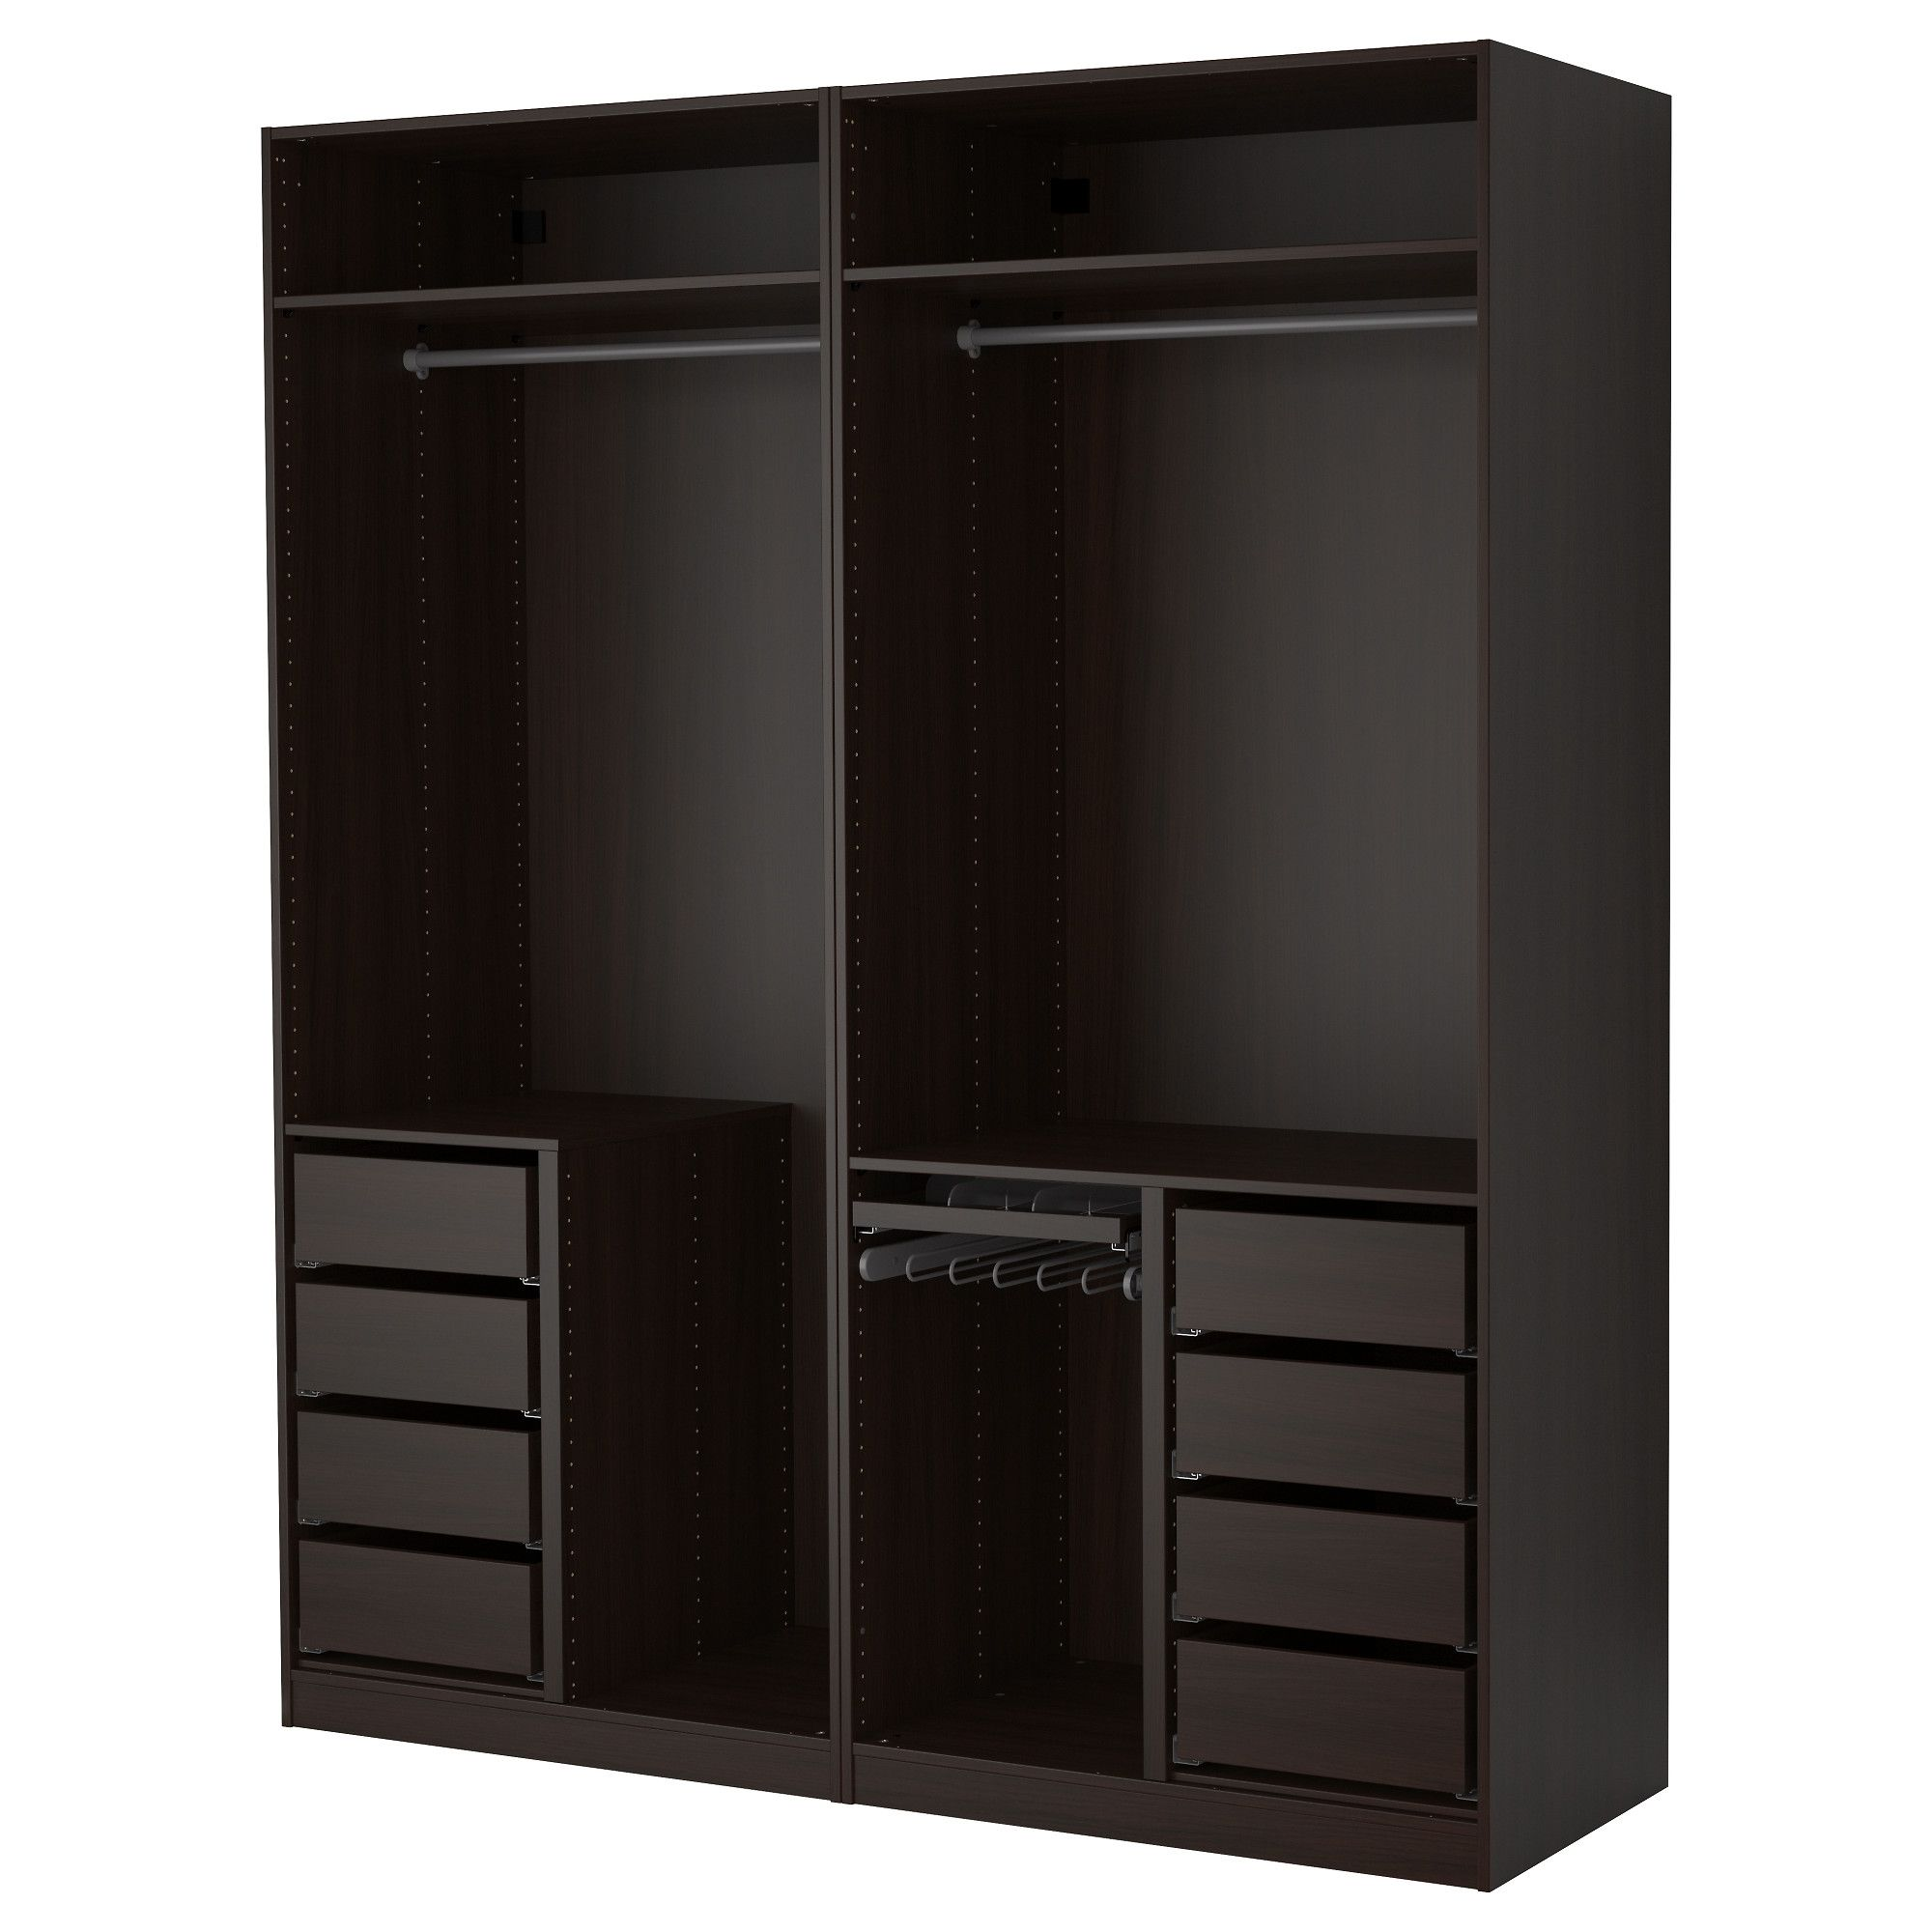 pax armoire penderie brun noir 200x58x236 cm ikea. Black Bedroom Furniture Sets. Home Design Ideas